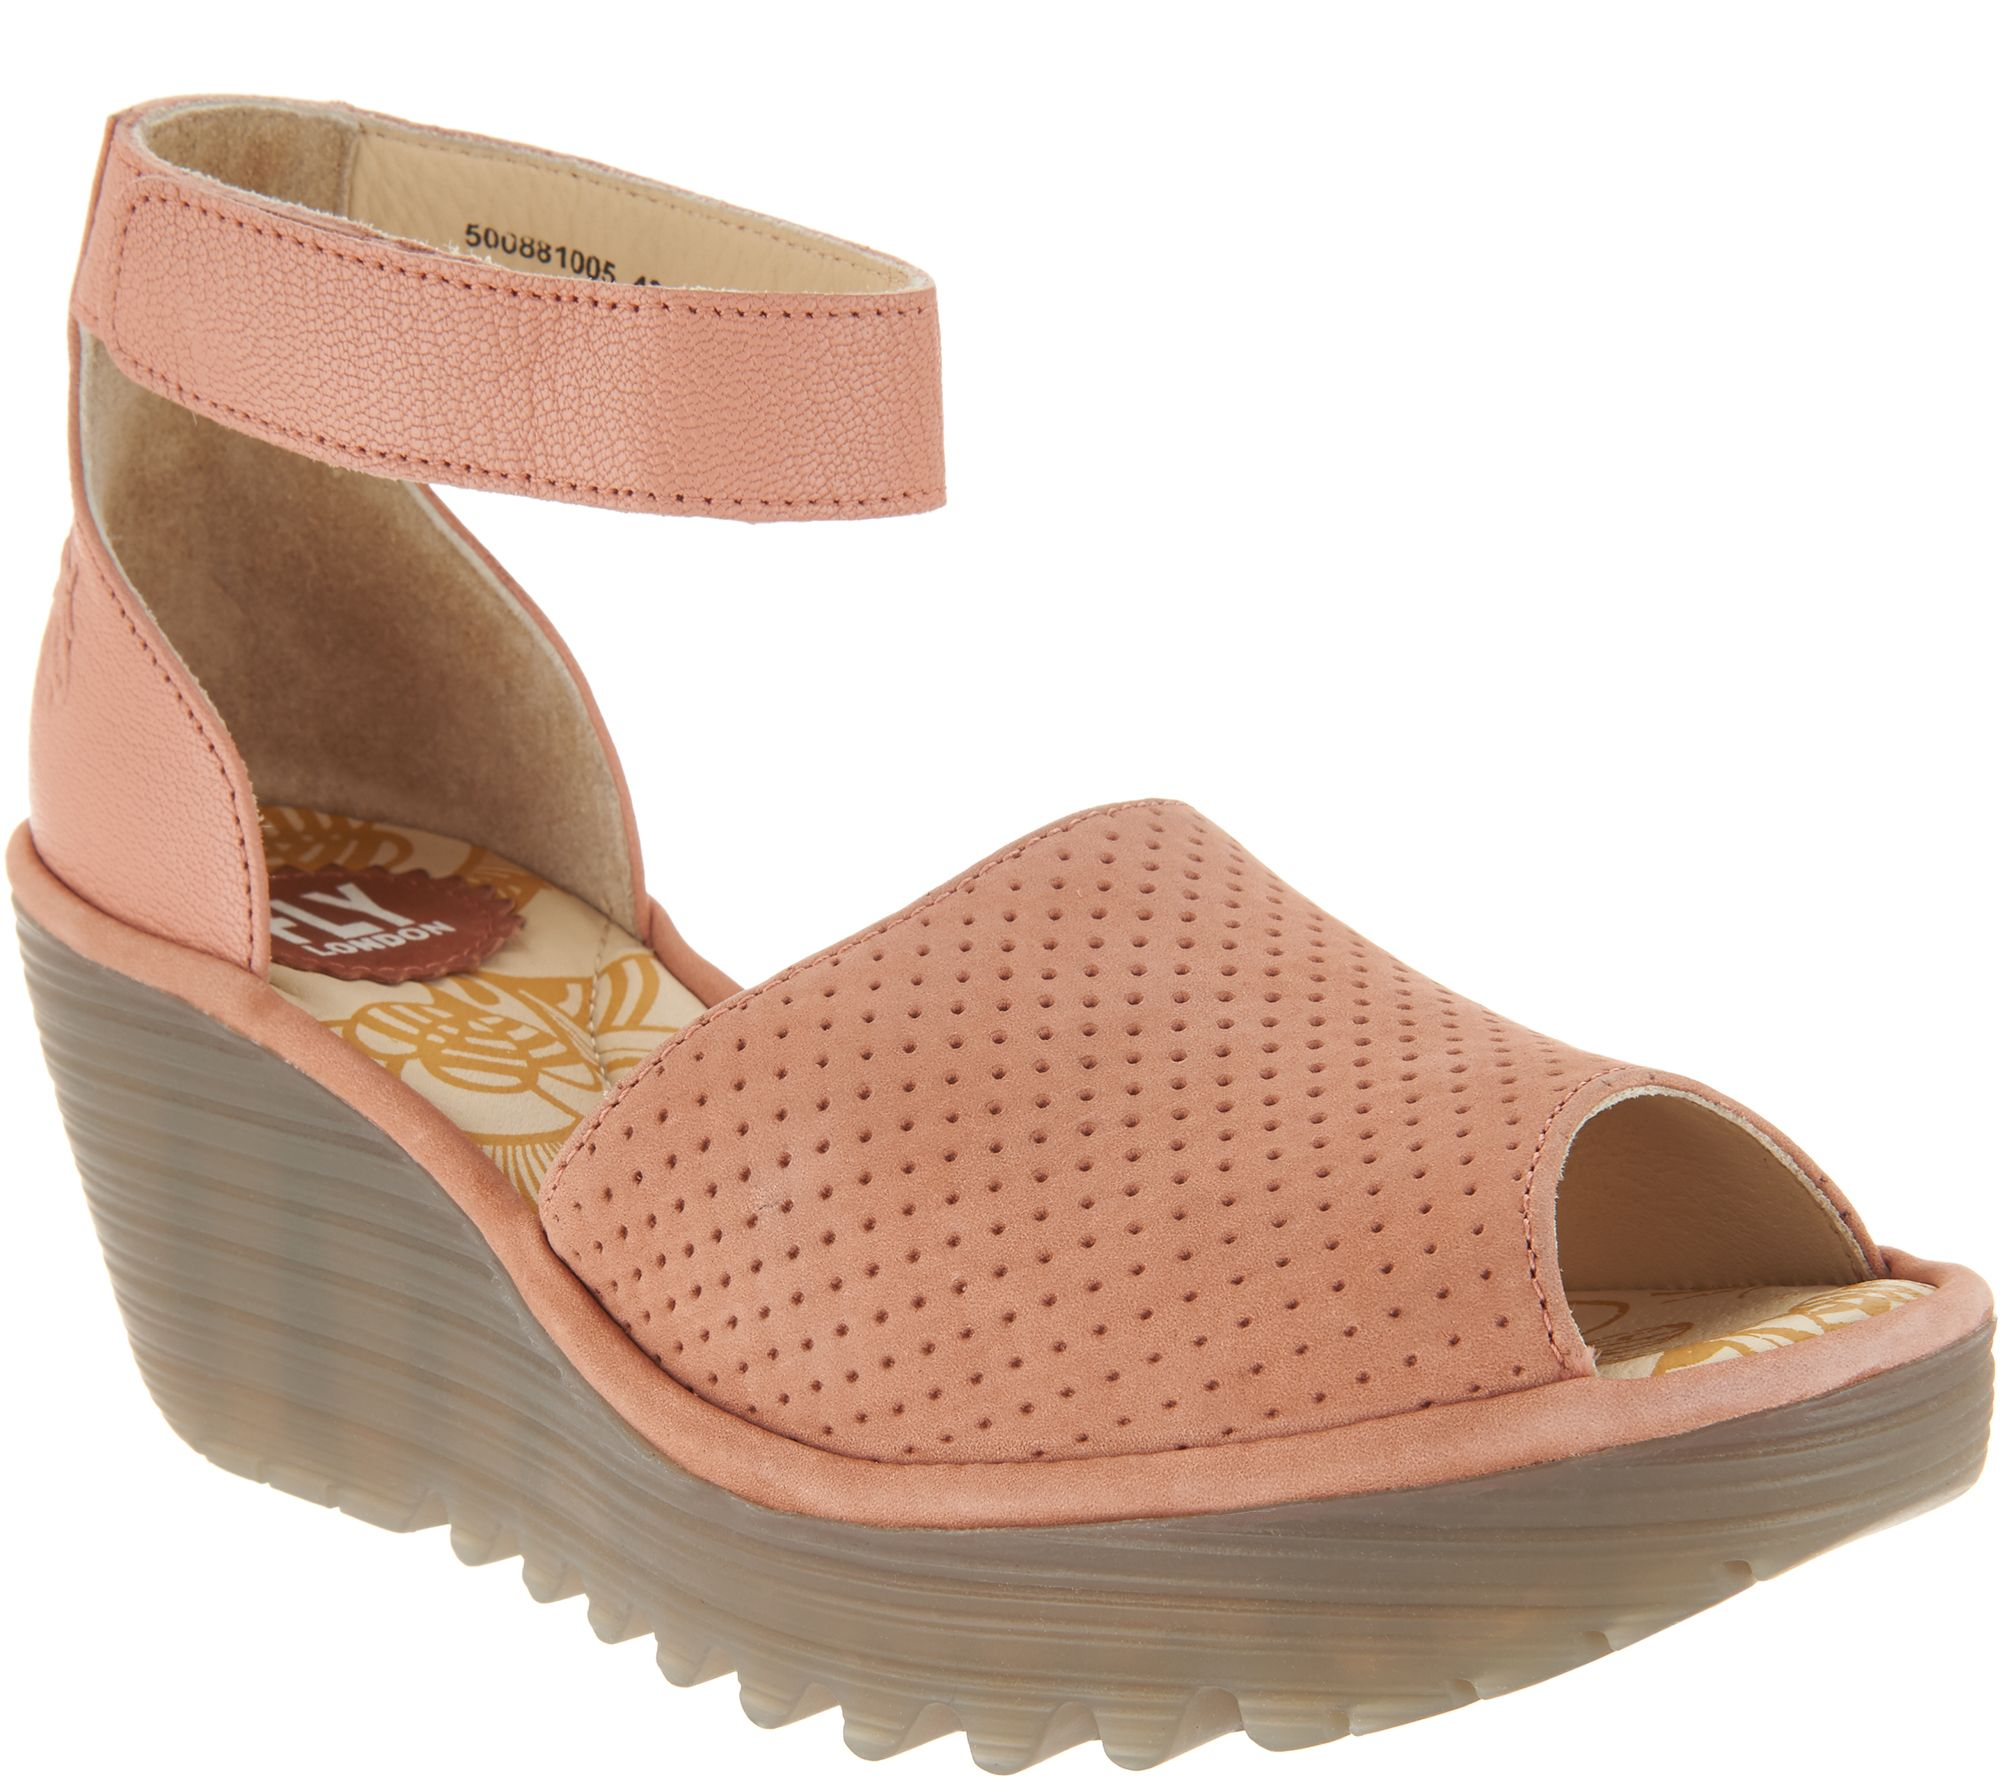 Fly London Perforated Leather Wedge Sandals   Yake by Qvc